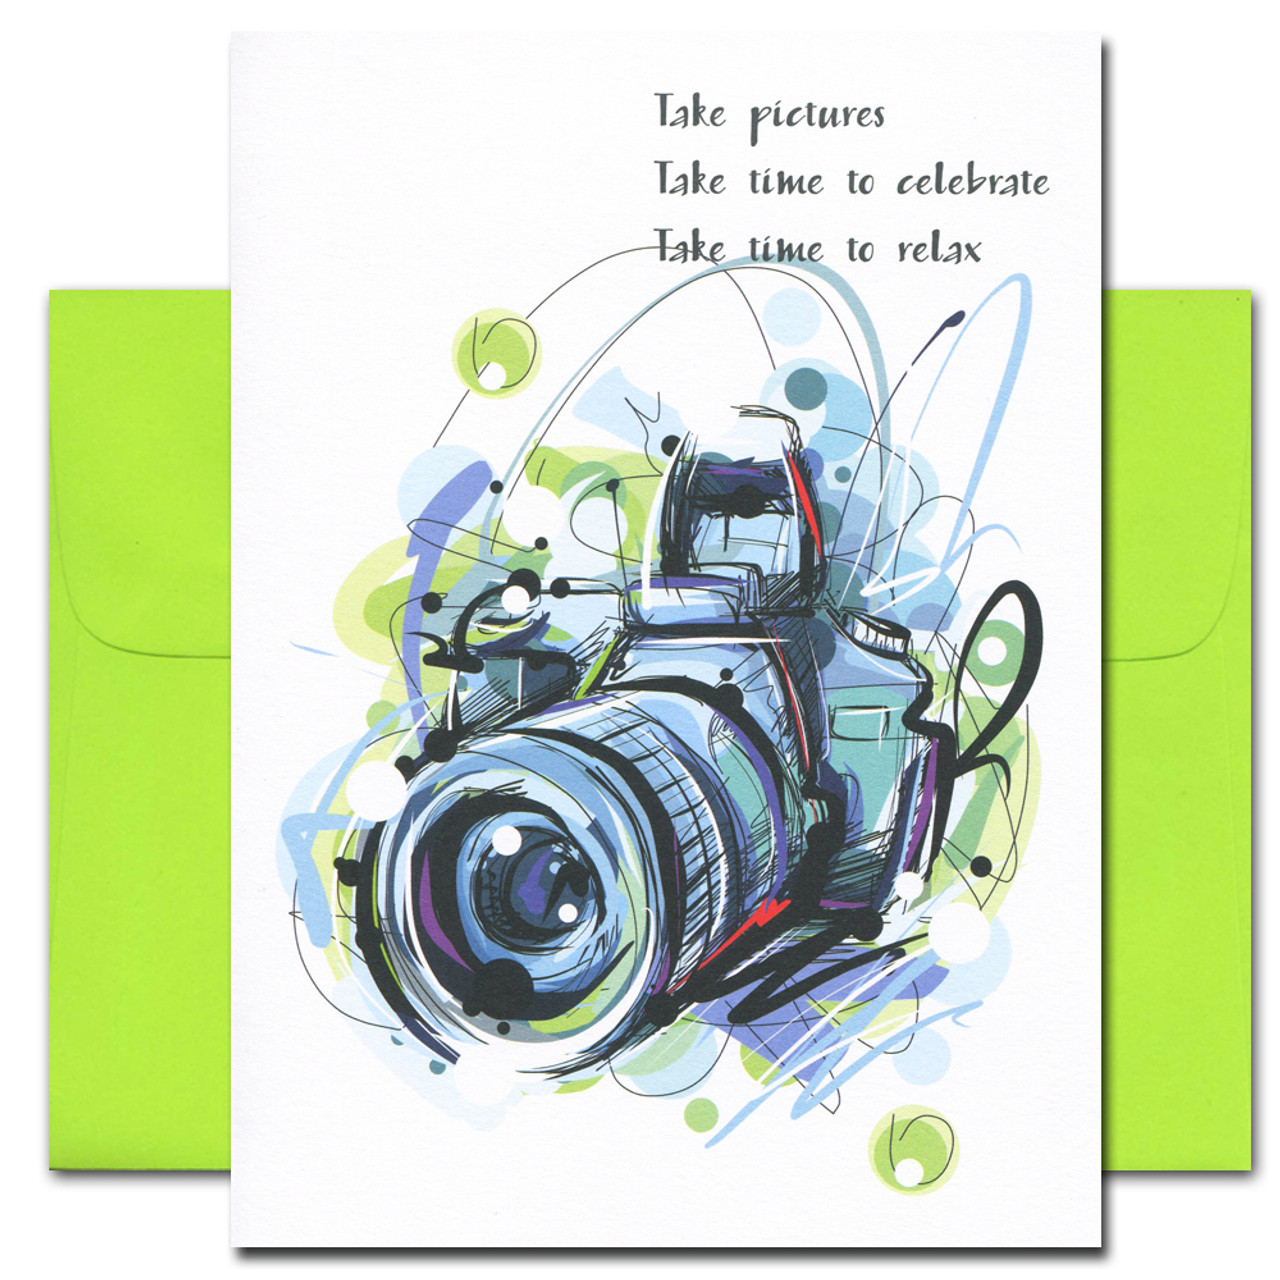 Take Pictures Congratulations card features an abstract illustration of a camera and the words: Take Pictures Take time to celebrate Take time to relax